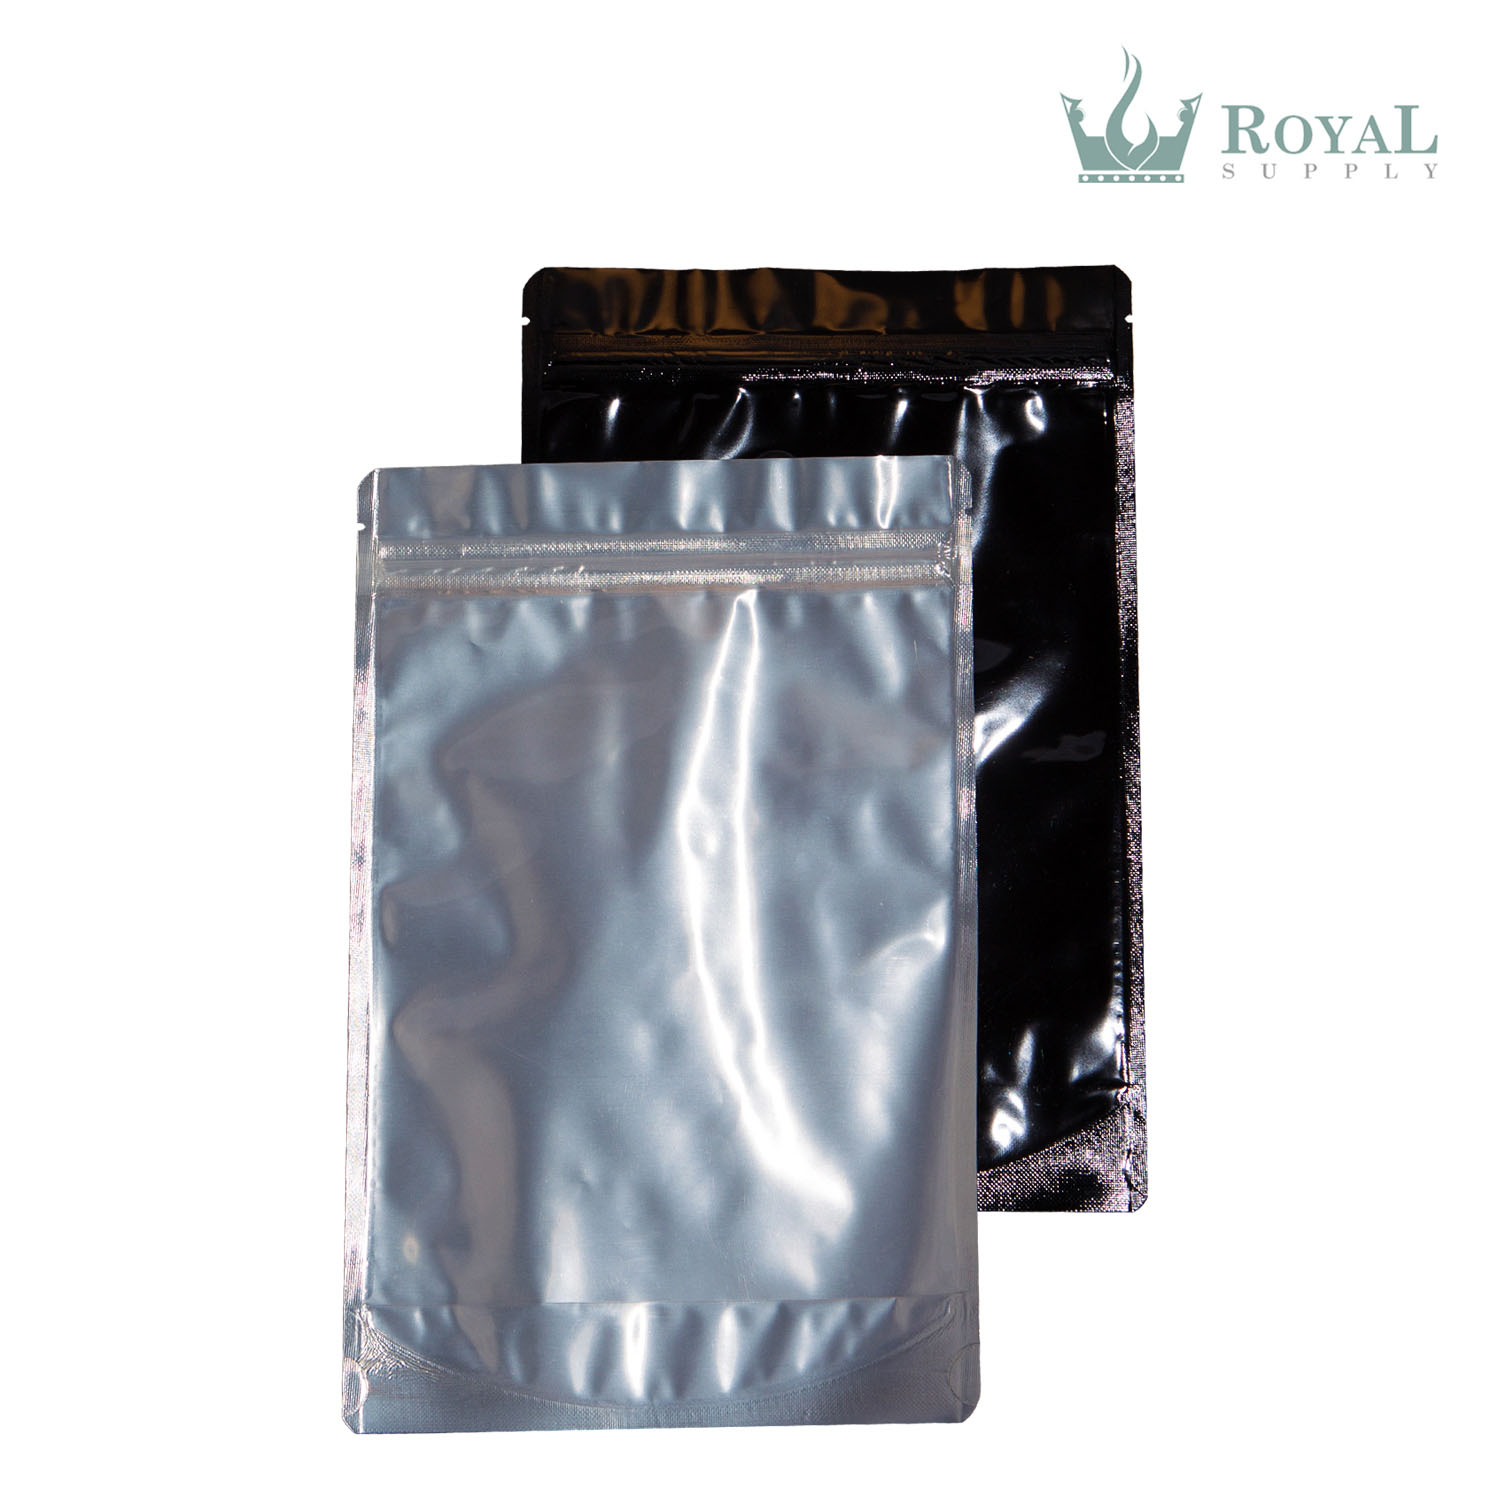 1 Ounce Mylar Barrier Bags